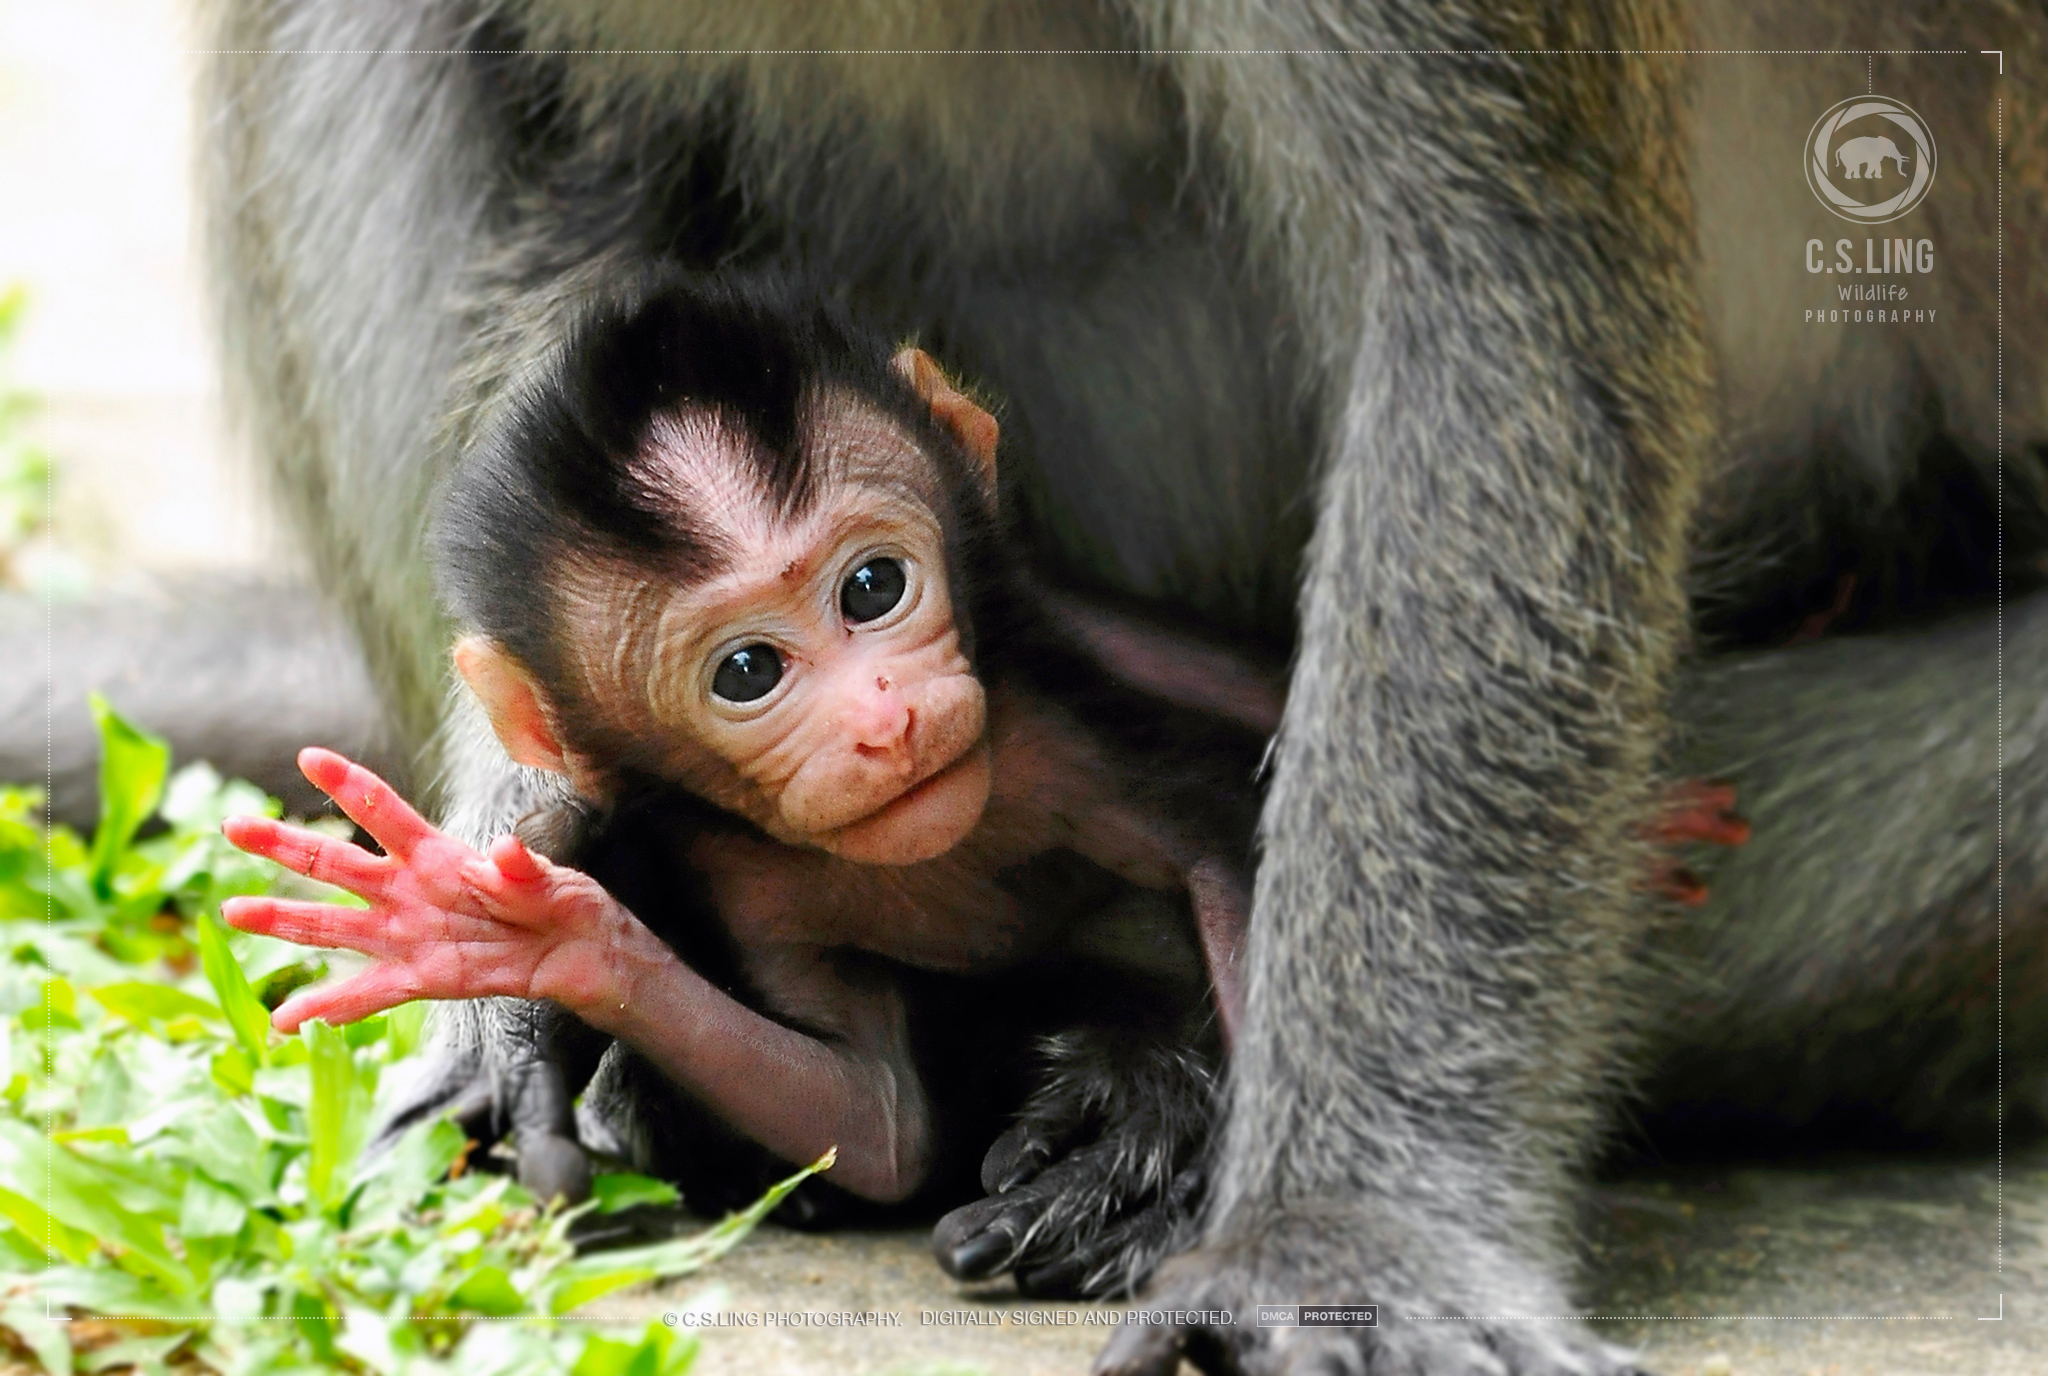 Long-tailed Macaque Baby says Hi! | Cute Baby Animal Photos